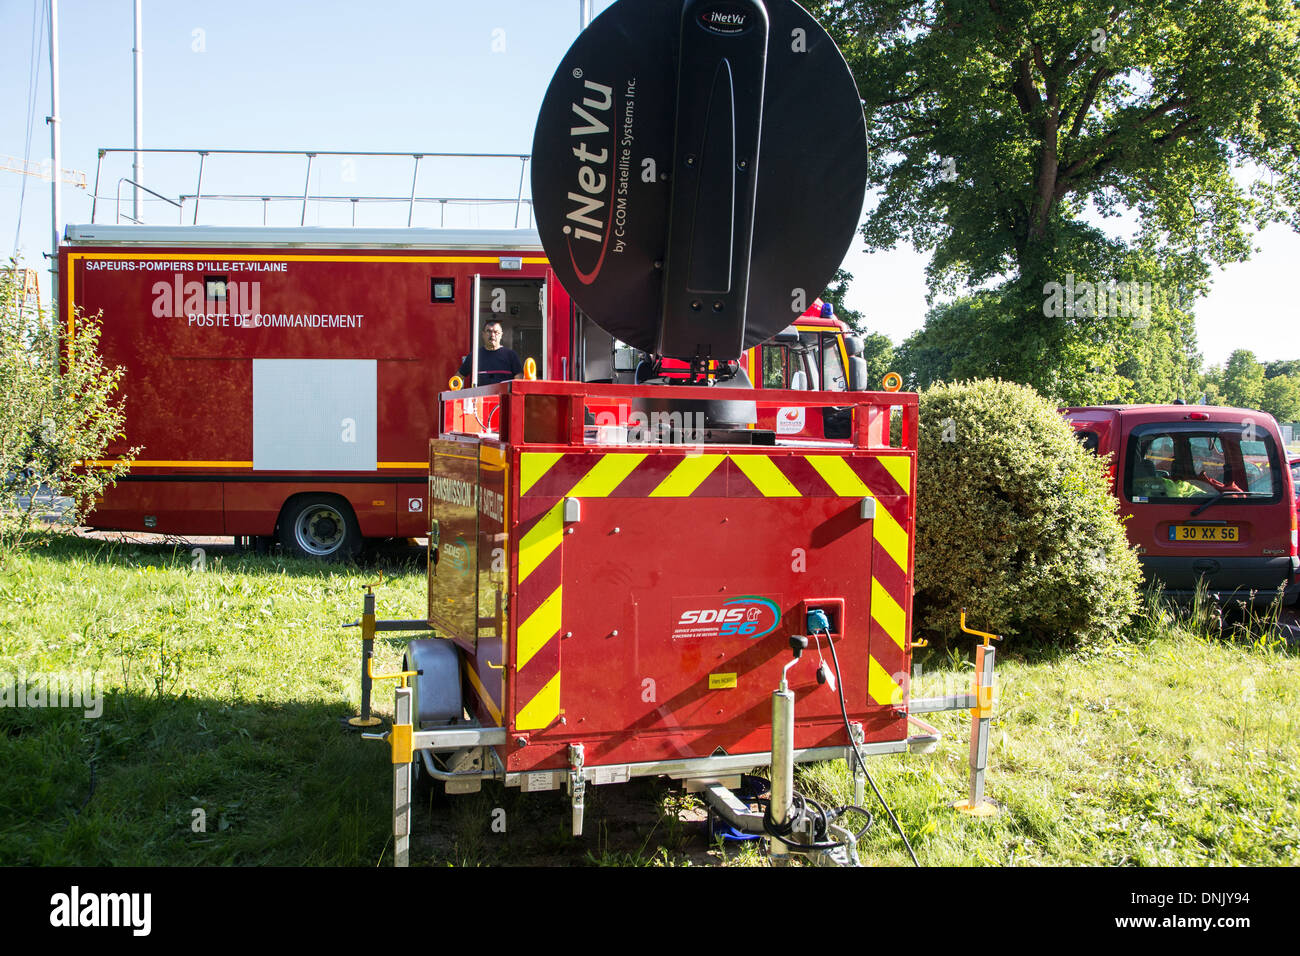 SATELLITE TRANSMISSION TRAILER FOR THE COMMANDER OF THE FIREFIGHTERS' RESCUE OPERATIONS, SITE OF THE DIREX (DIRECTION OF EXERCISES), REDON, ILLE-ET-VILAINE (35), FRANCE - Stock Image